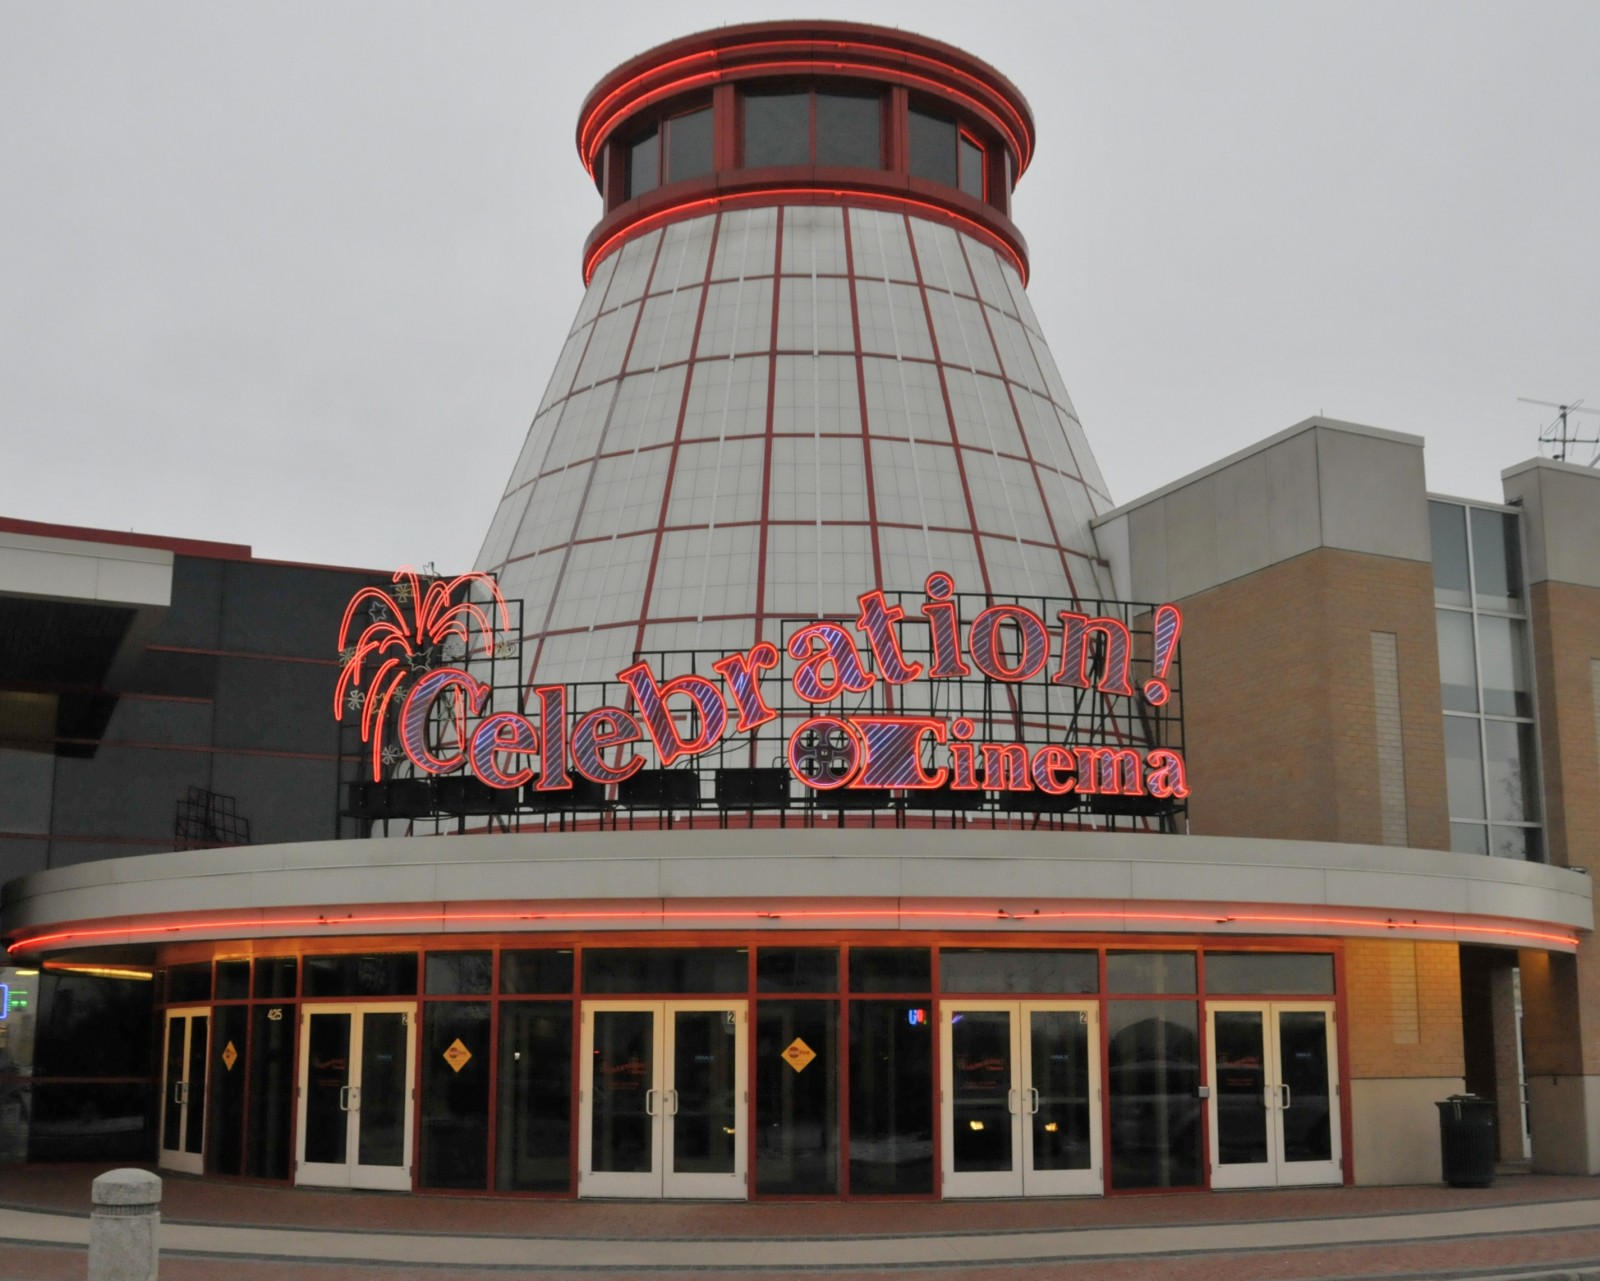 062 - Celebration Cinema Portage